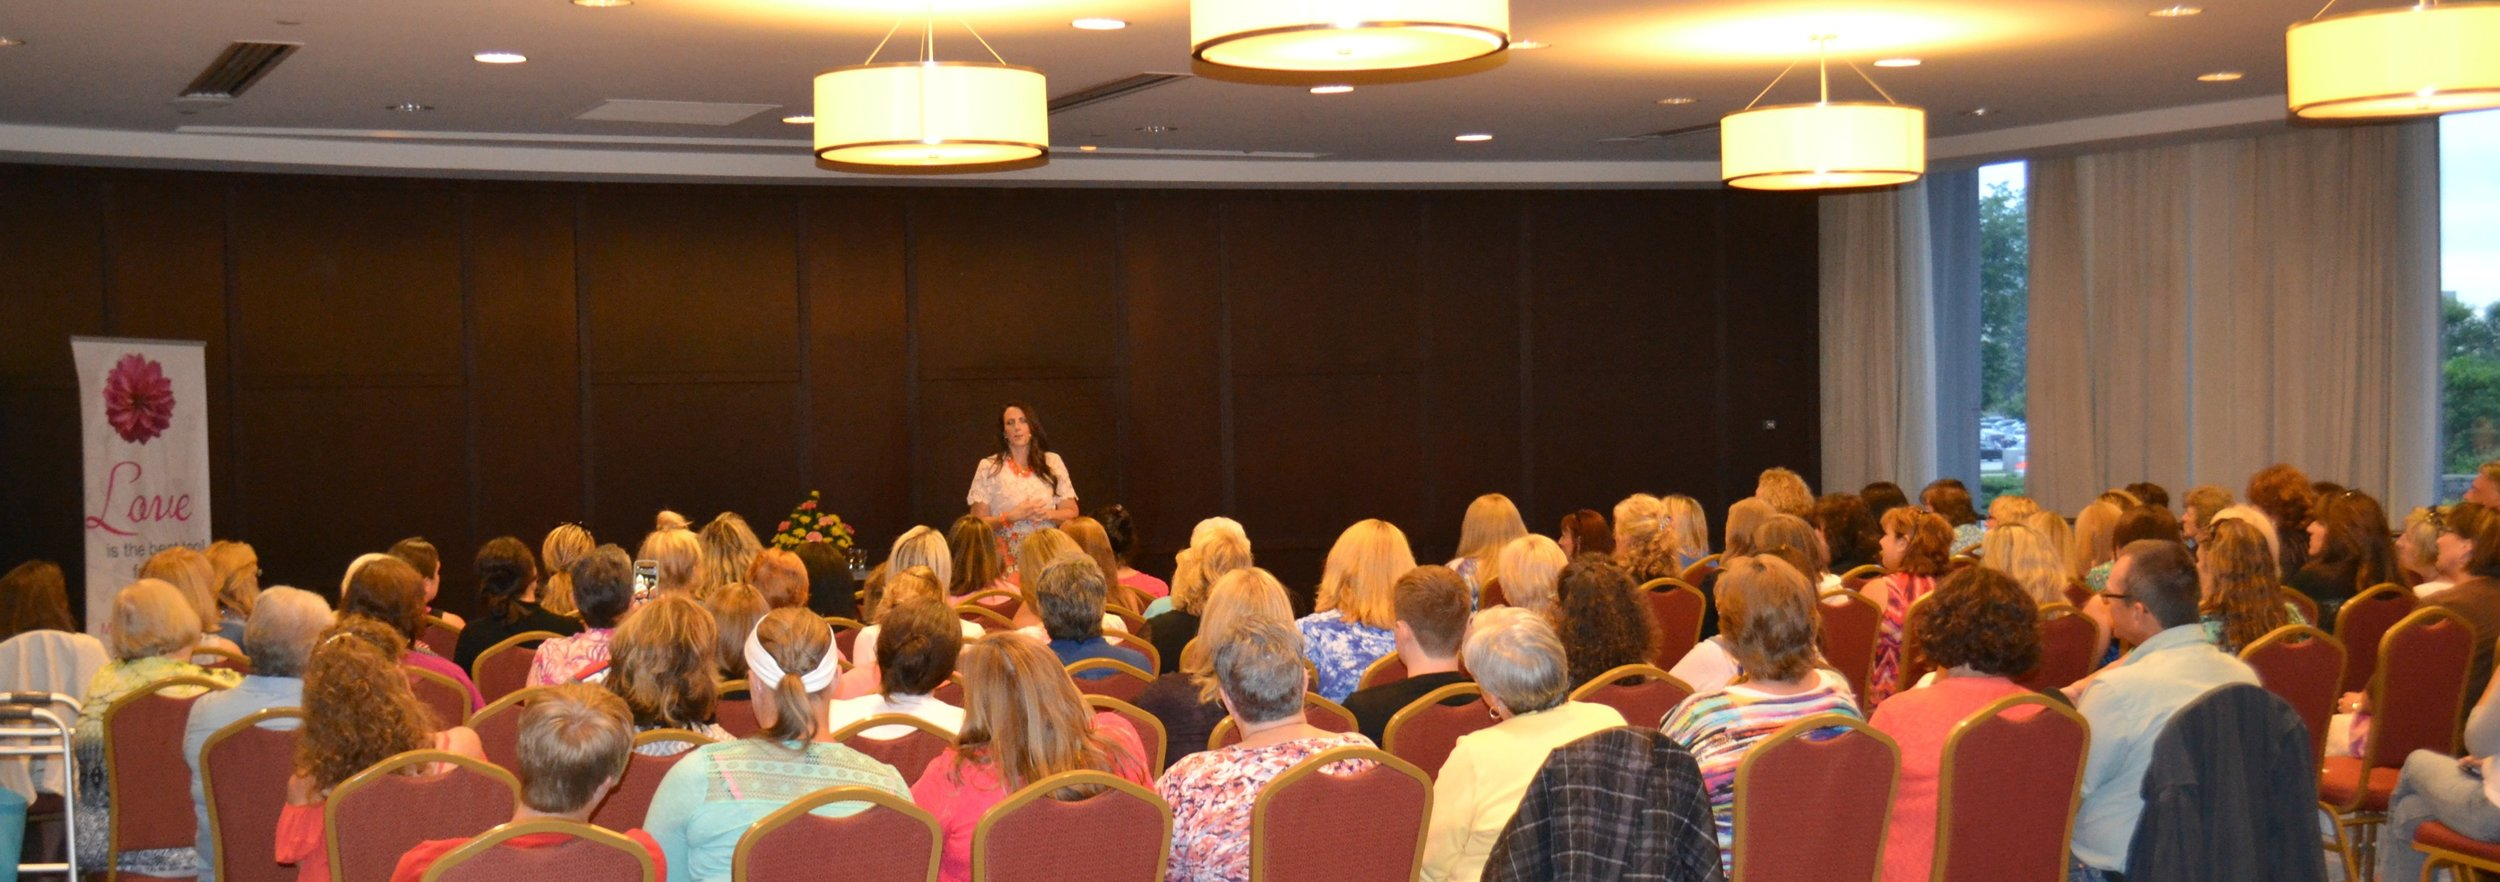 Psychic Medium Mollie Morning Star giving messages from Spirit in Minneapolis, Twin Cities, MN